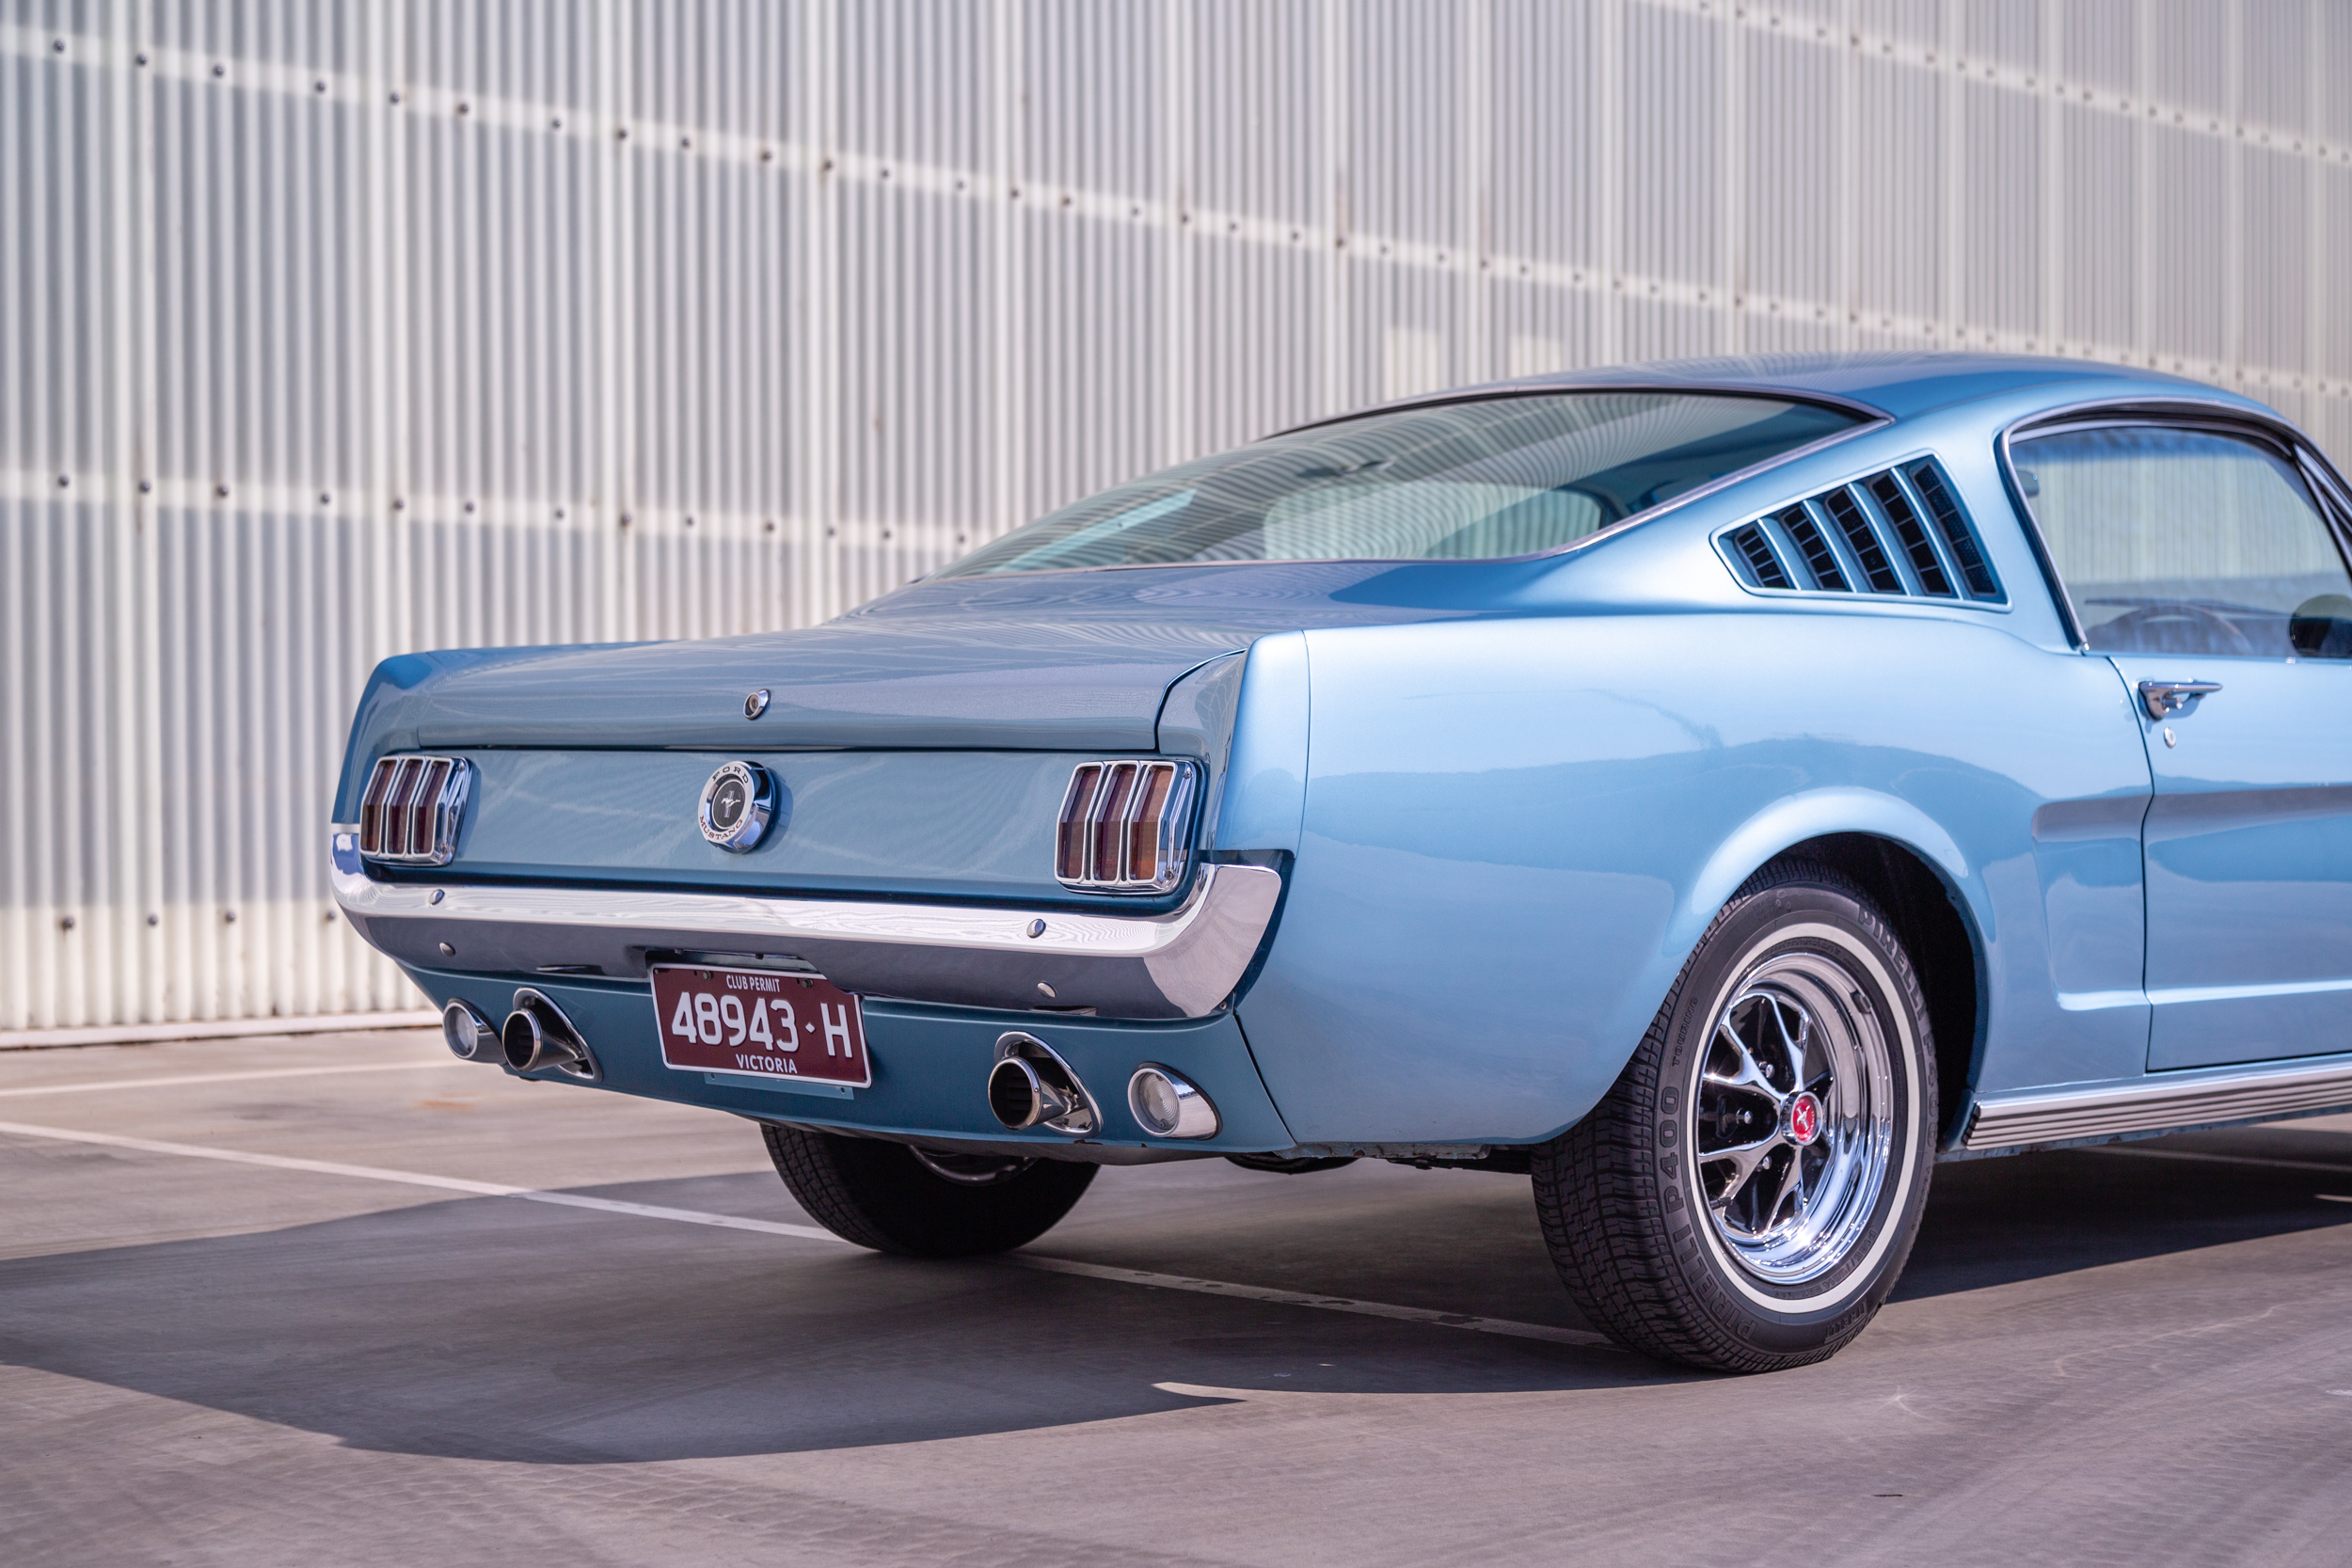 1965 Ford Mustang Fastback RHD - Find Me Cars